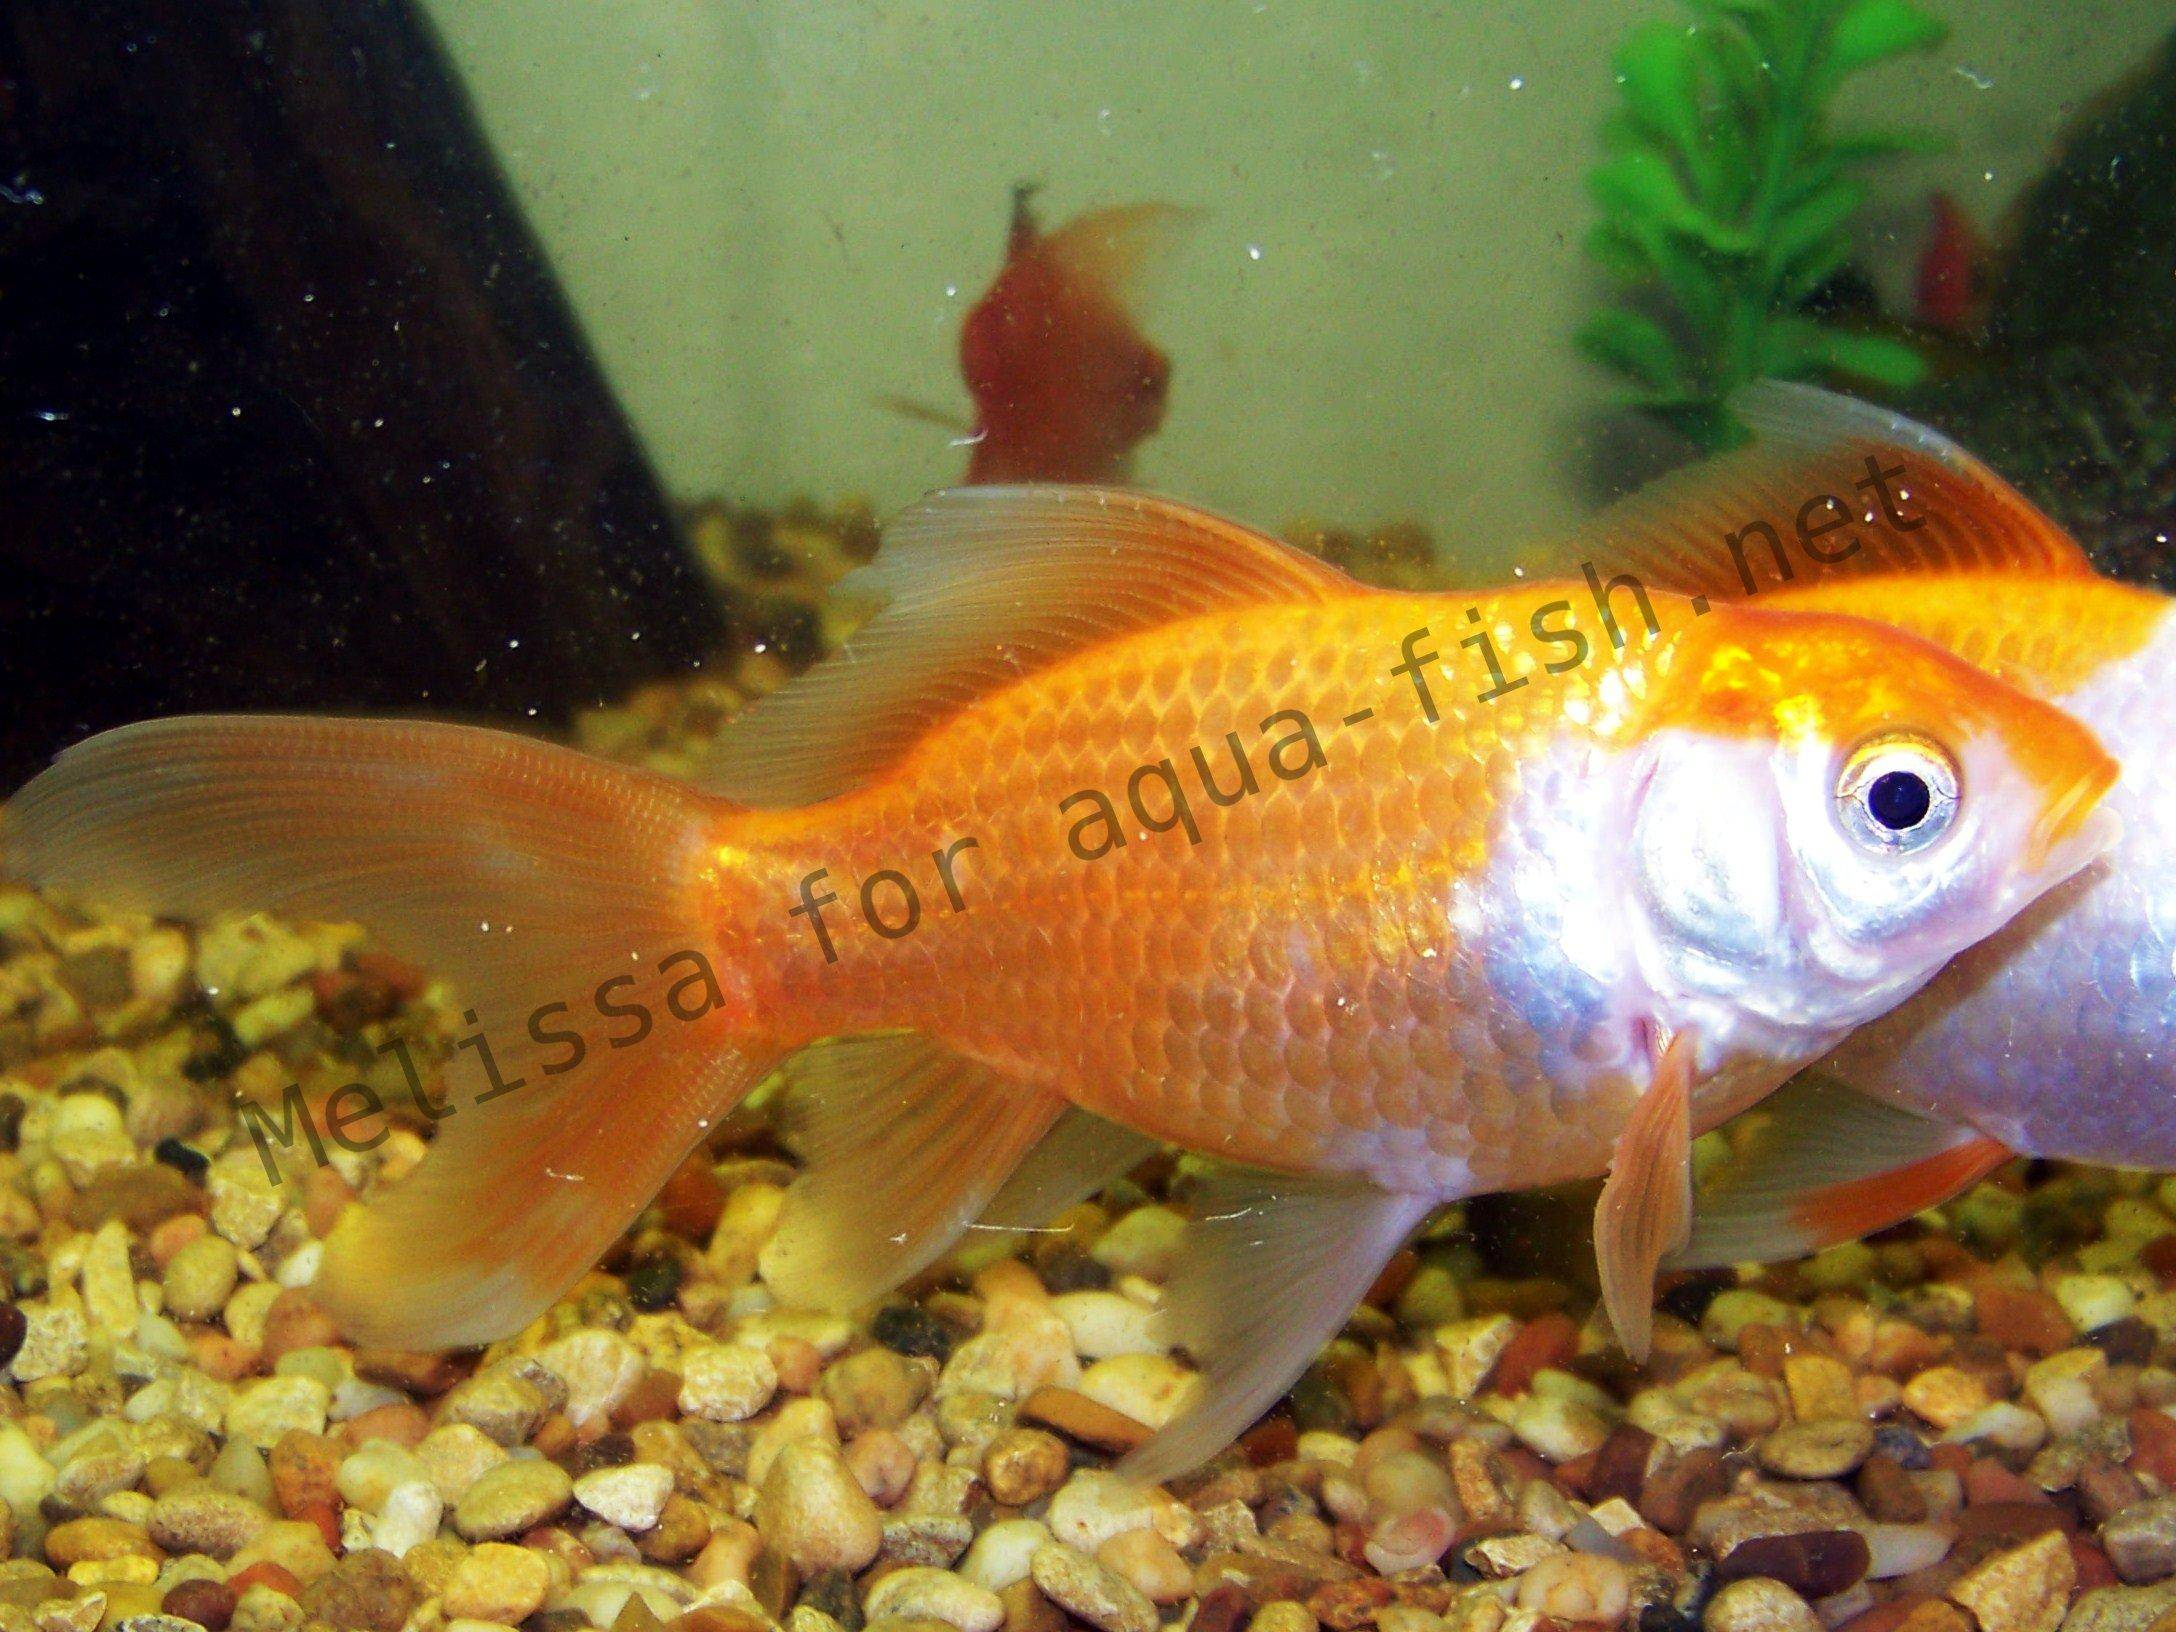 P18386 Shark Tale Character P as well Josh Hutcherson furthermore Aquarium Fish Ich Tropical Fish Diseases Identification And Cures Aquarium Fish additionally Profile Jewelcichlid likewise Just An Inspiring Quote On Life. on oscar fish profile